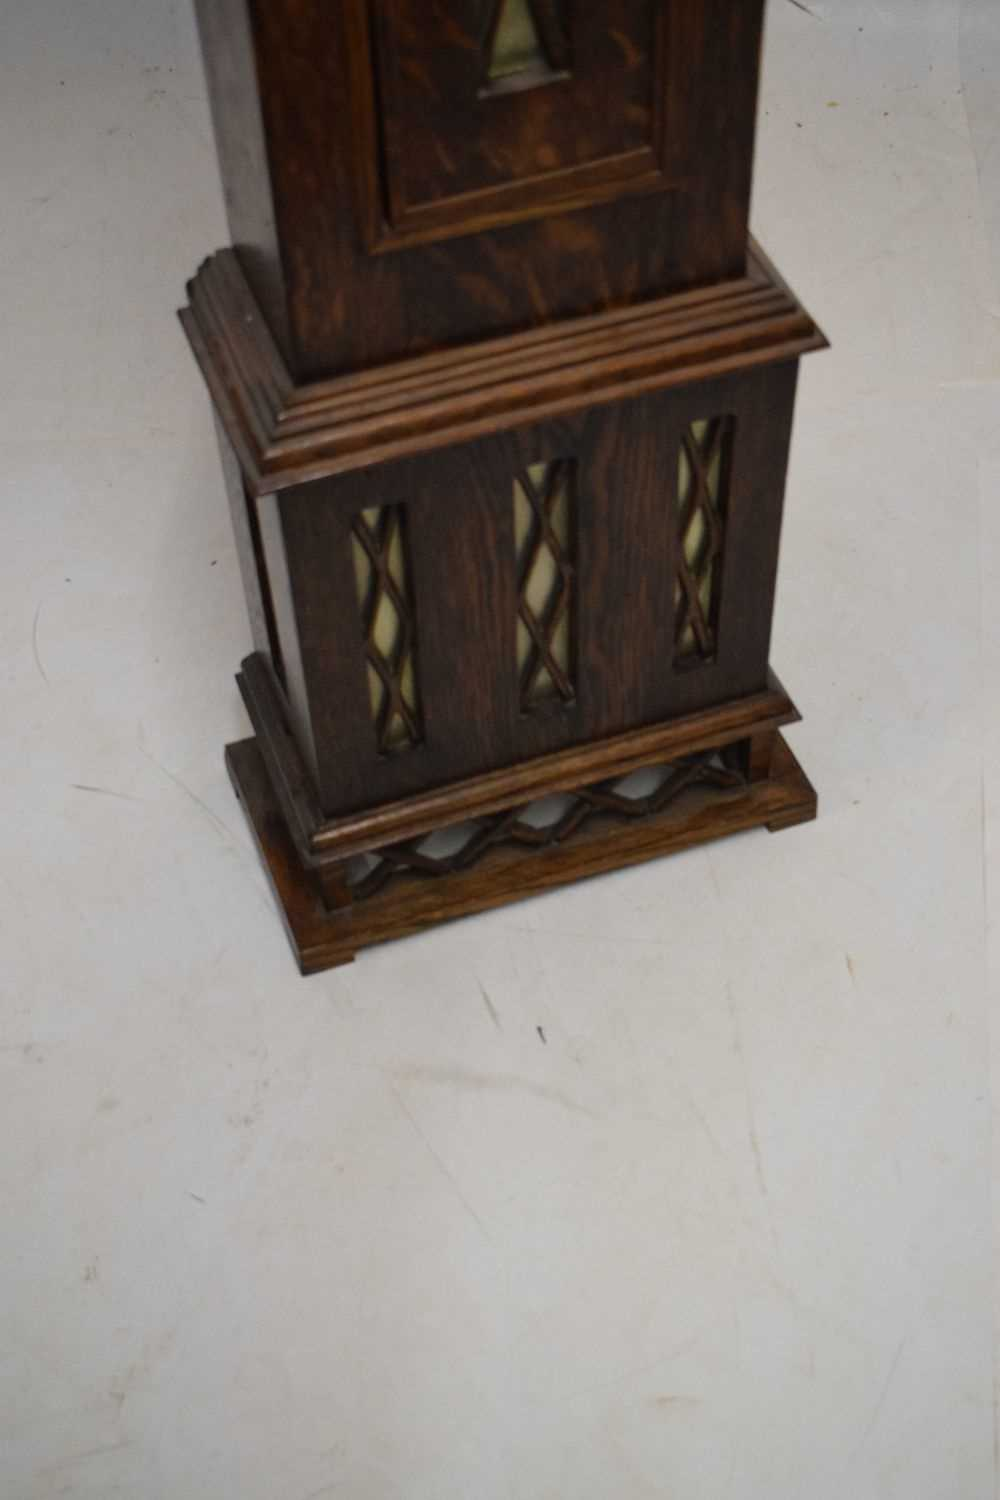 Early 20th Century oak-cased grandmother clock - Image 3 of 5